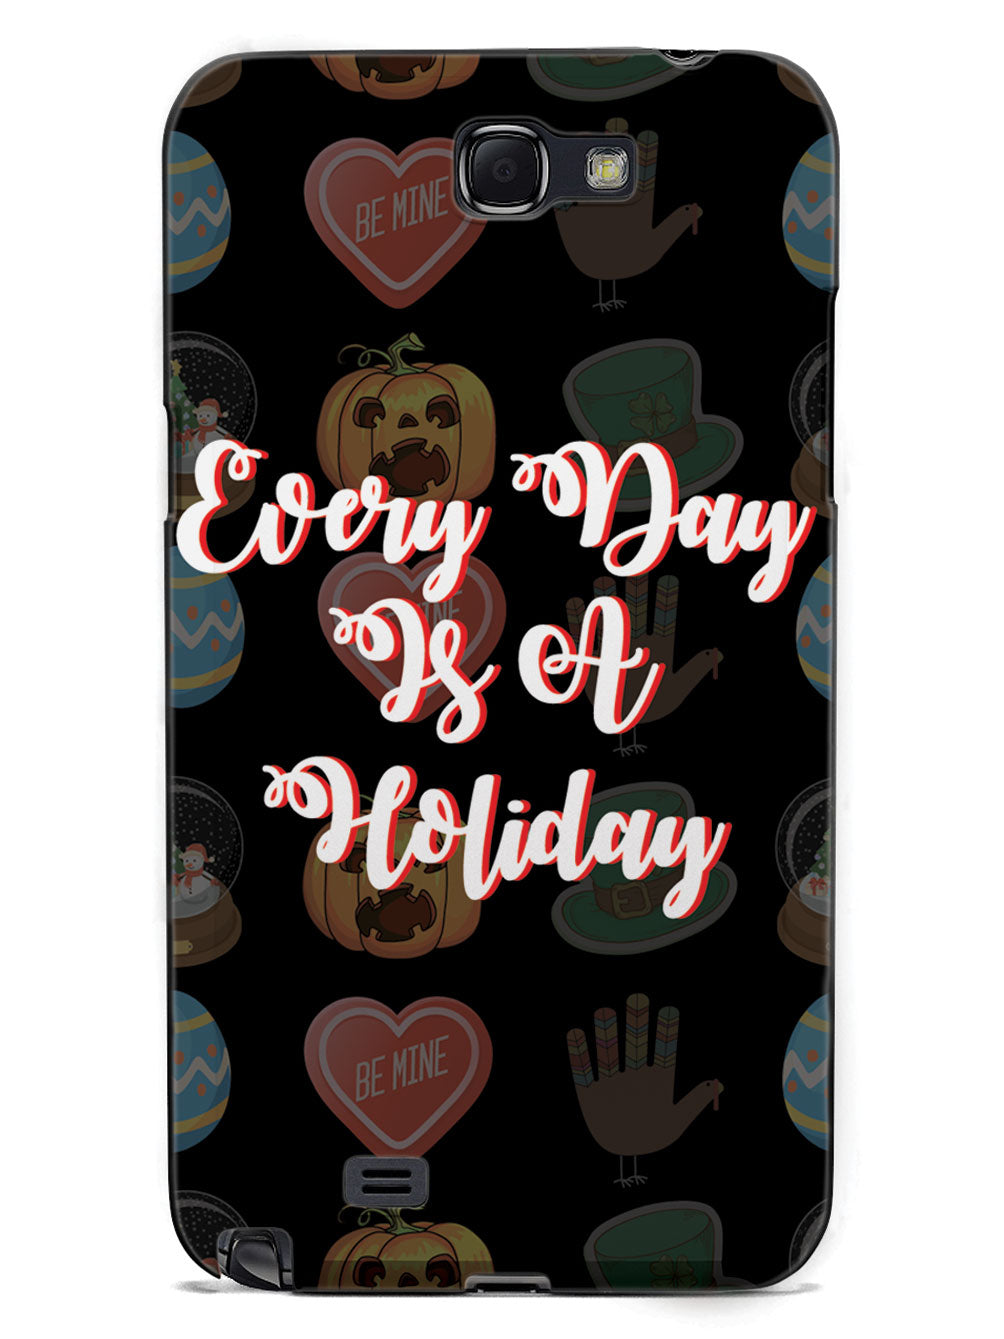 Every Day Is A Holiday - Black Case